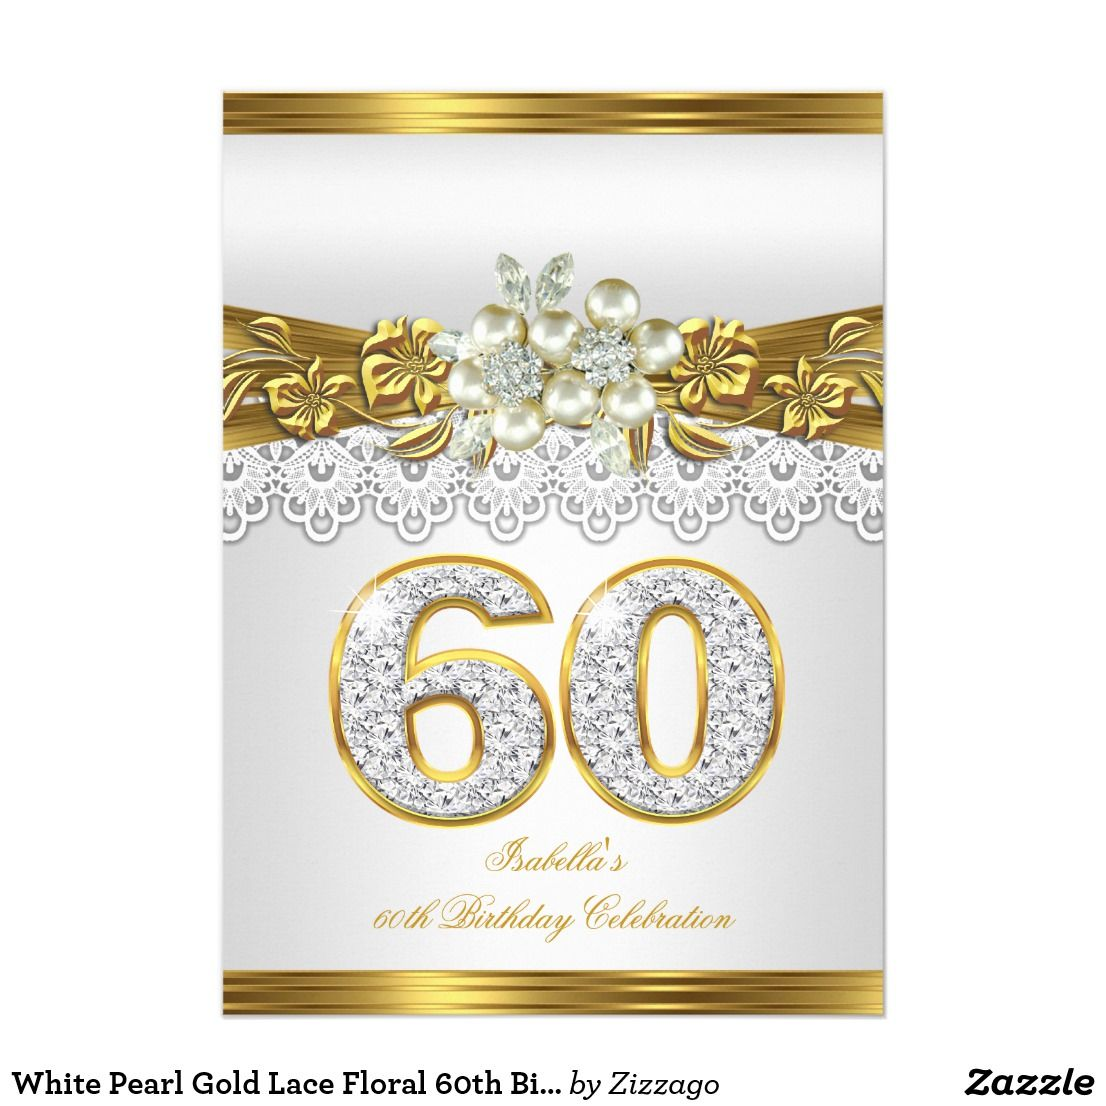 White Pearl Gold Lace Floral 60th Birthday Party Invitation ...